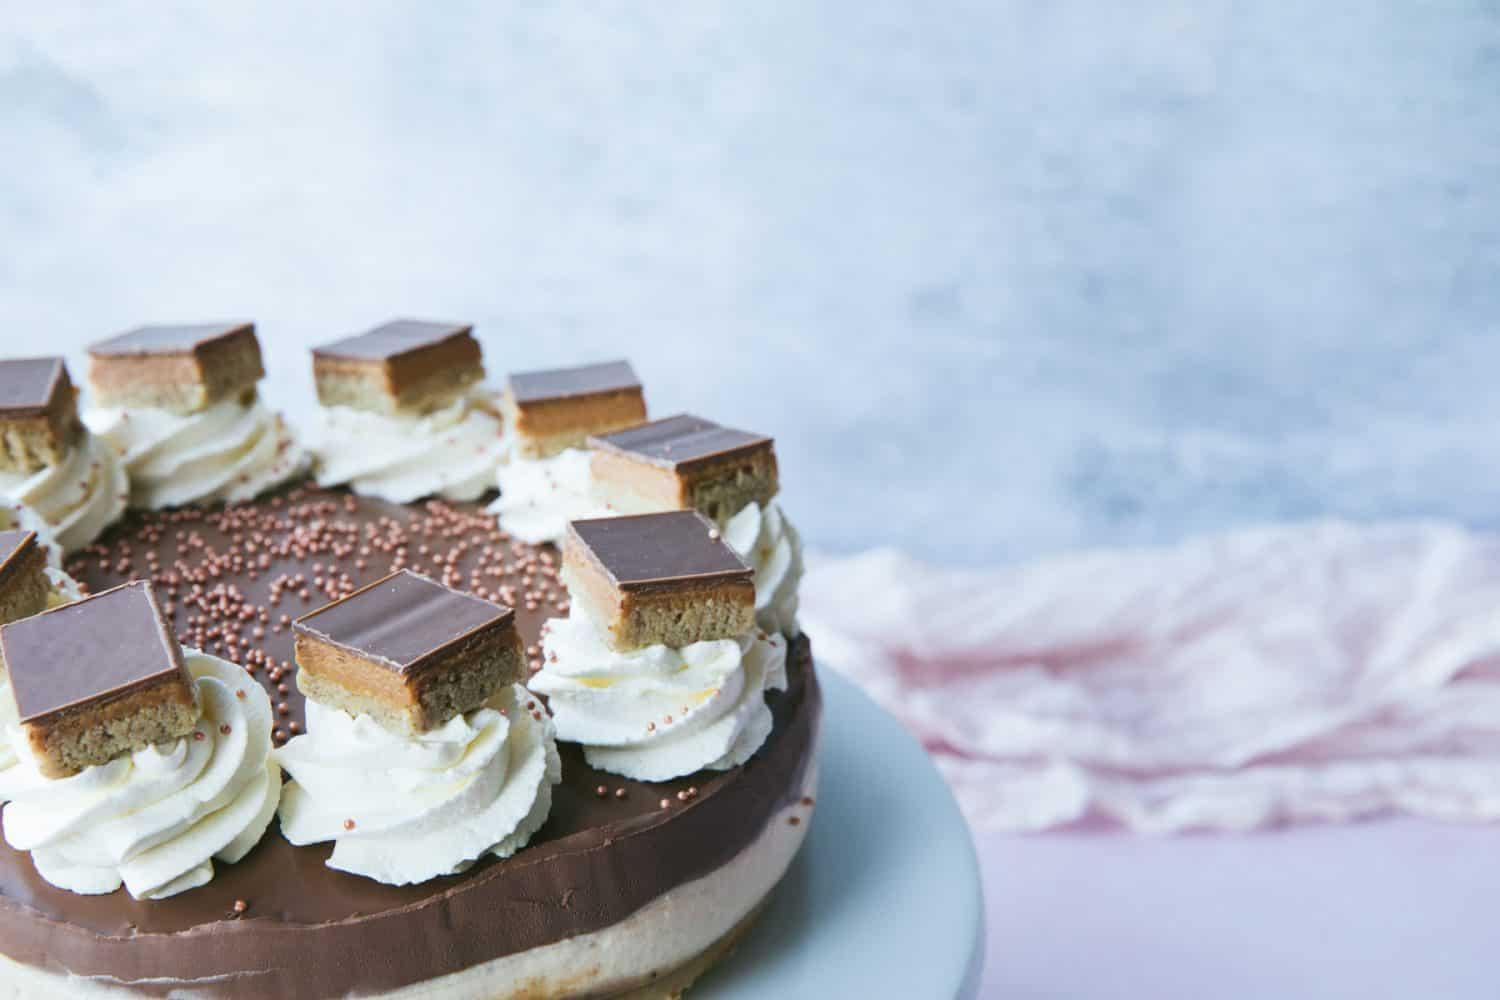 A cheesecake with shortbread, caramel, filling and chocolate layers all visible.